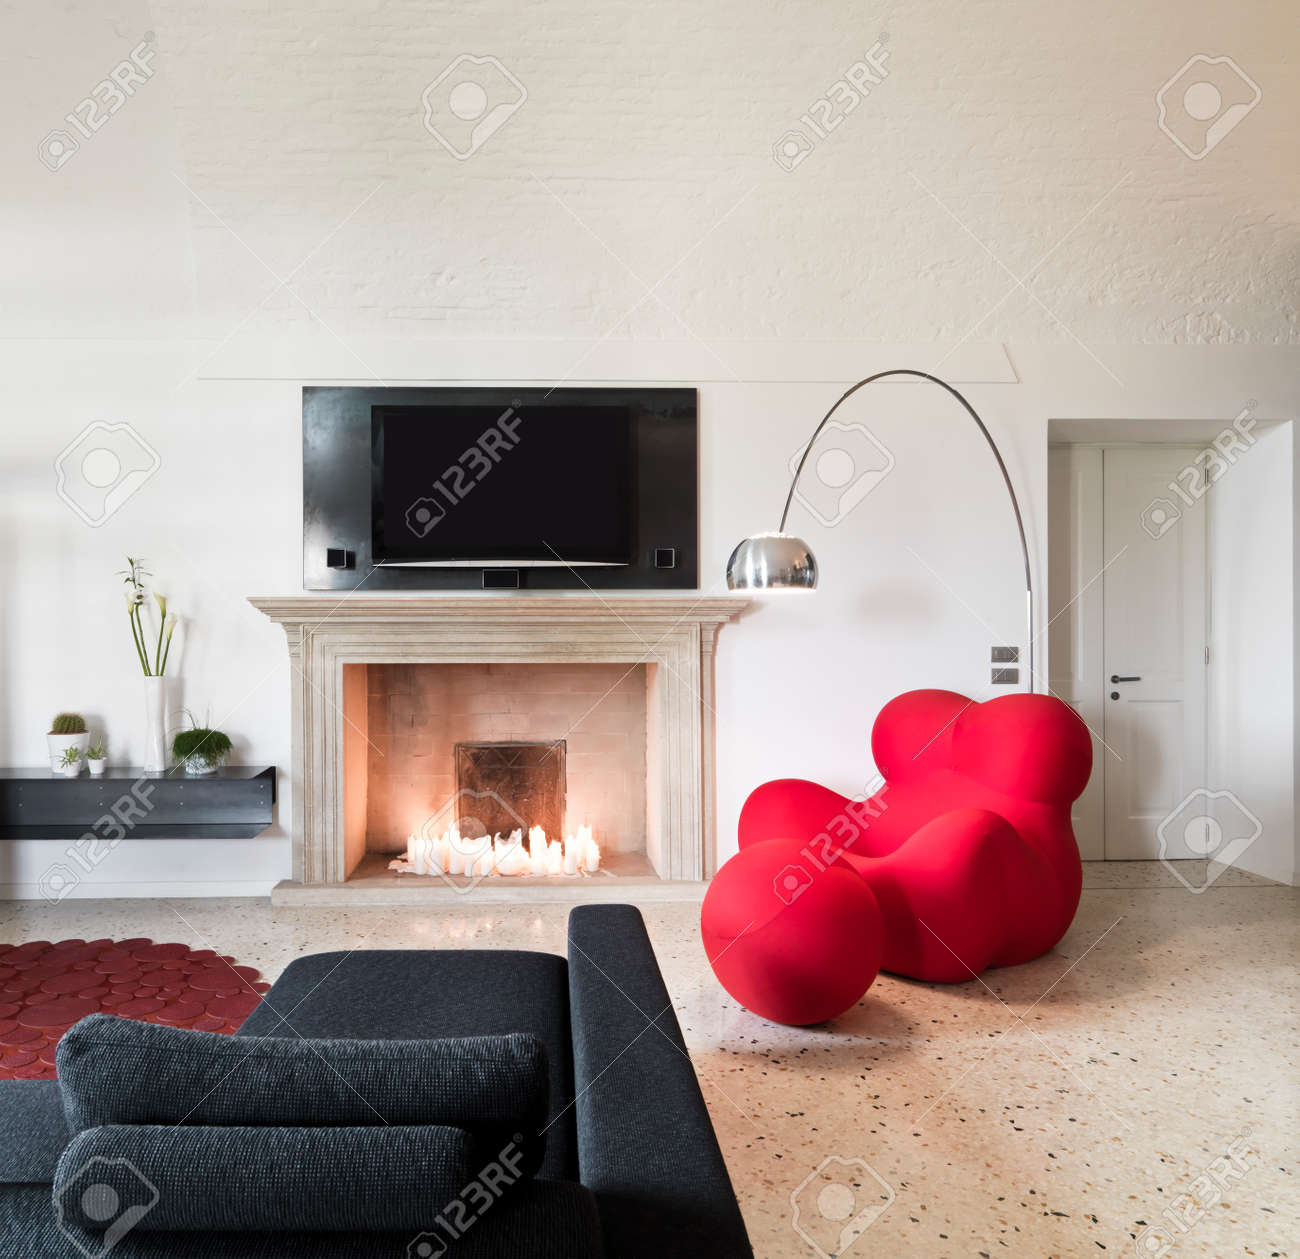 Black Sofa Red Armchair And Fireplace In A Modern Living Room